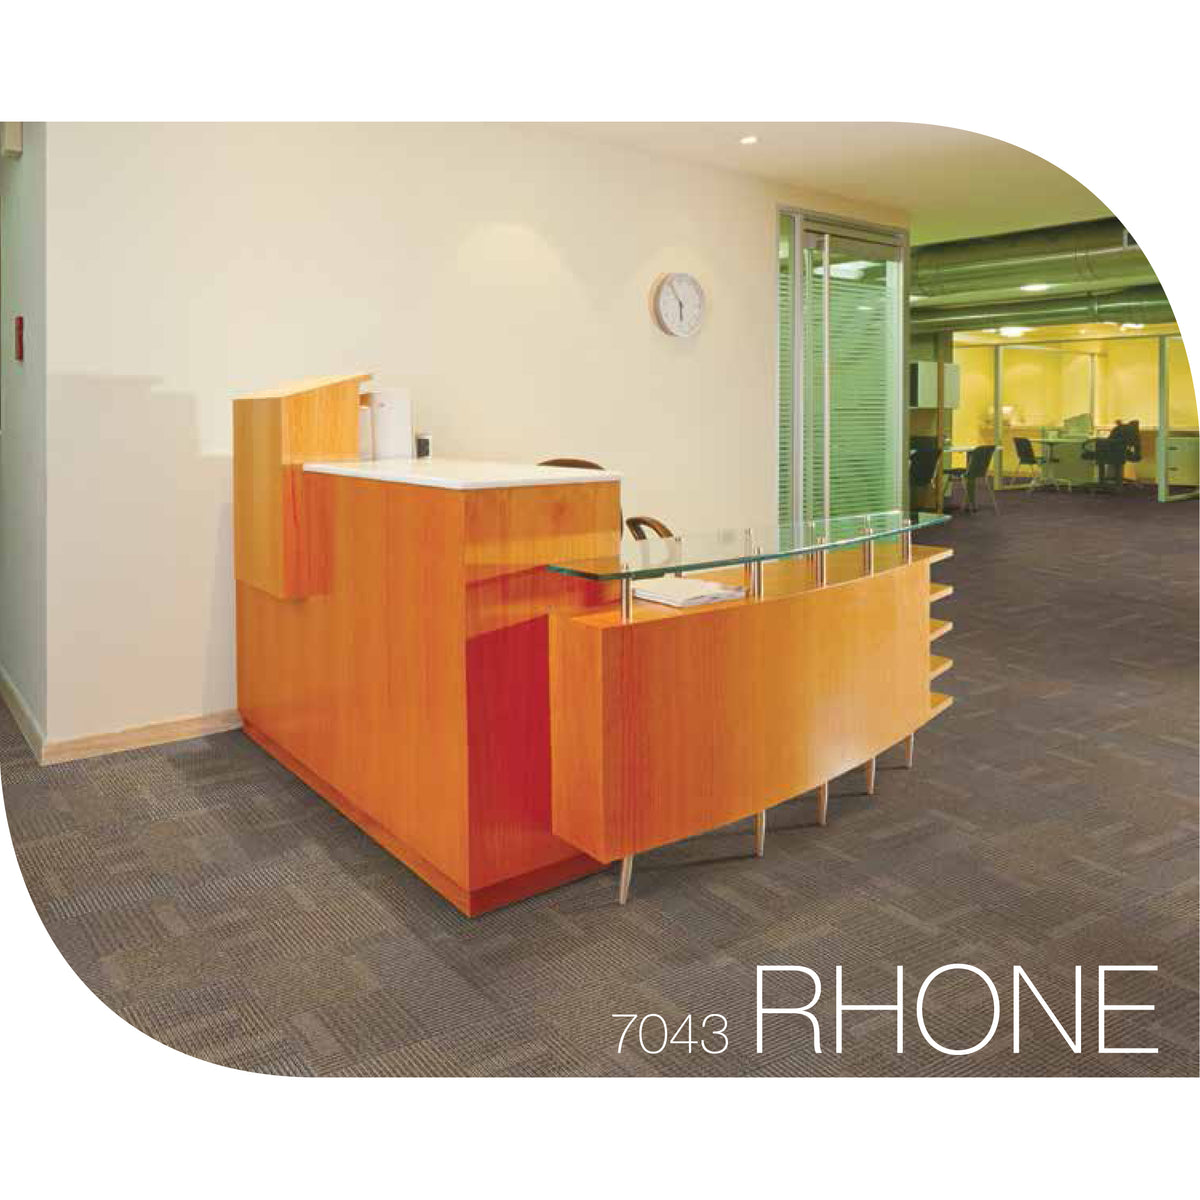 Kraus - Rhone - Carpet Tile - Coffee